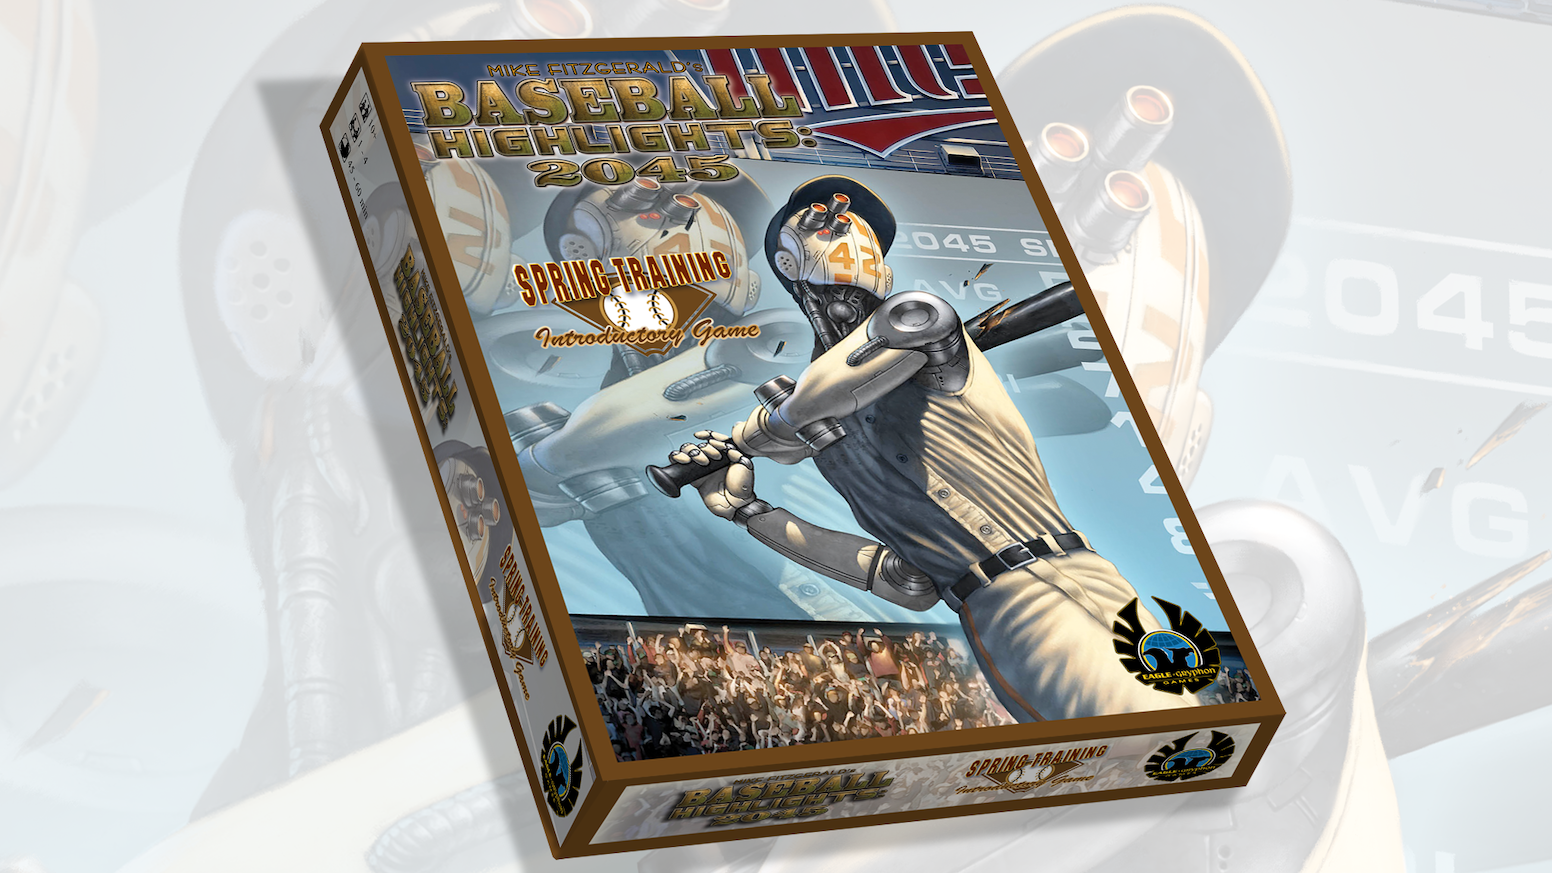 2-Player introductory version of the award-winning Baseball Highlights 2045! Get into the game! New BH2045 Expansions. also available.